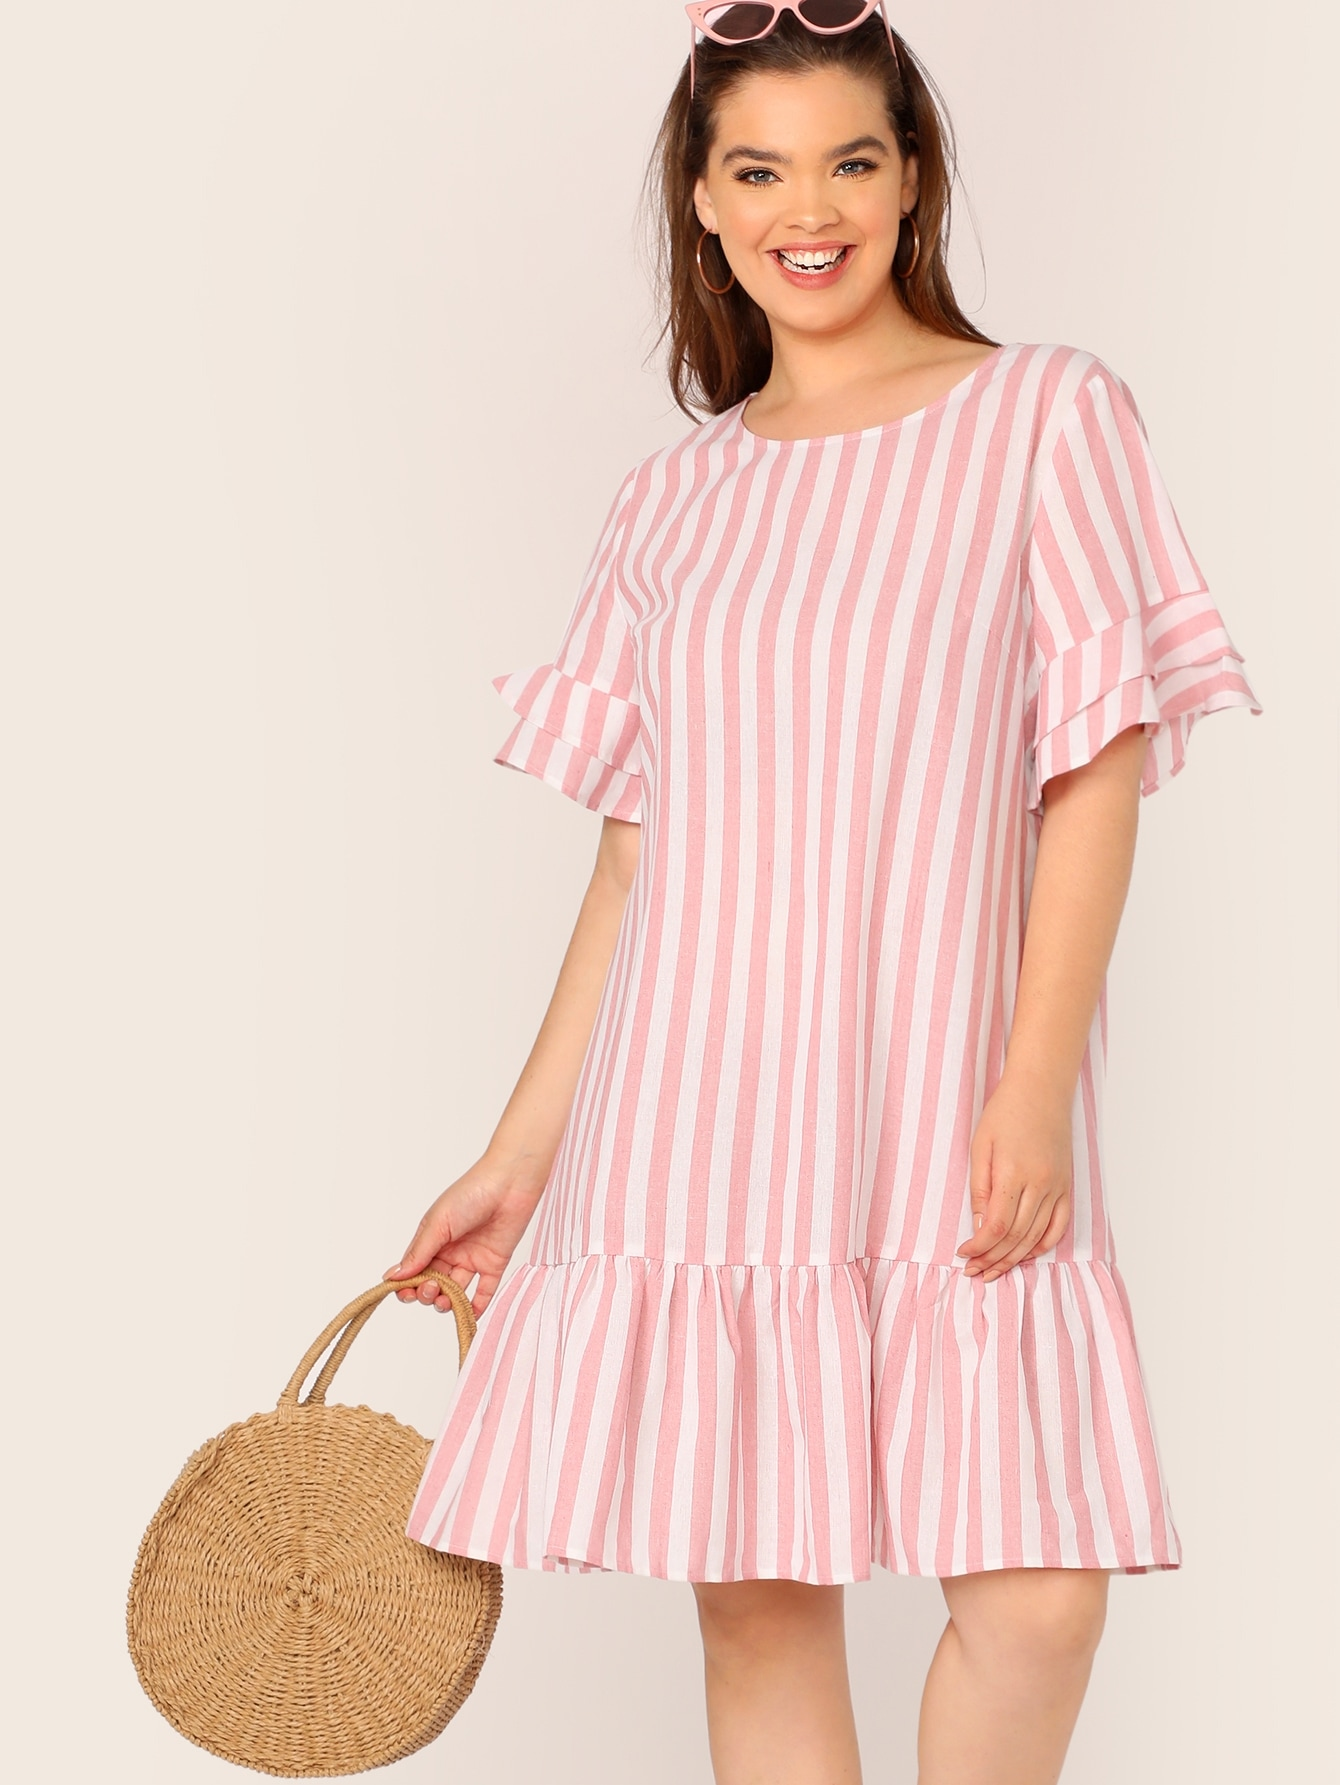 23f2b618d9e86 Plus Ruffle Trim Drop Waist Striped Dress, Faith Bowman - shein.com -  imall.com